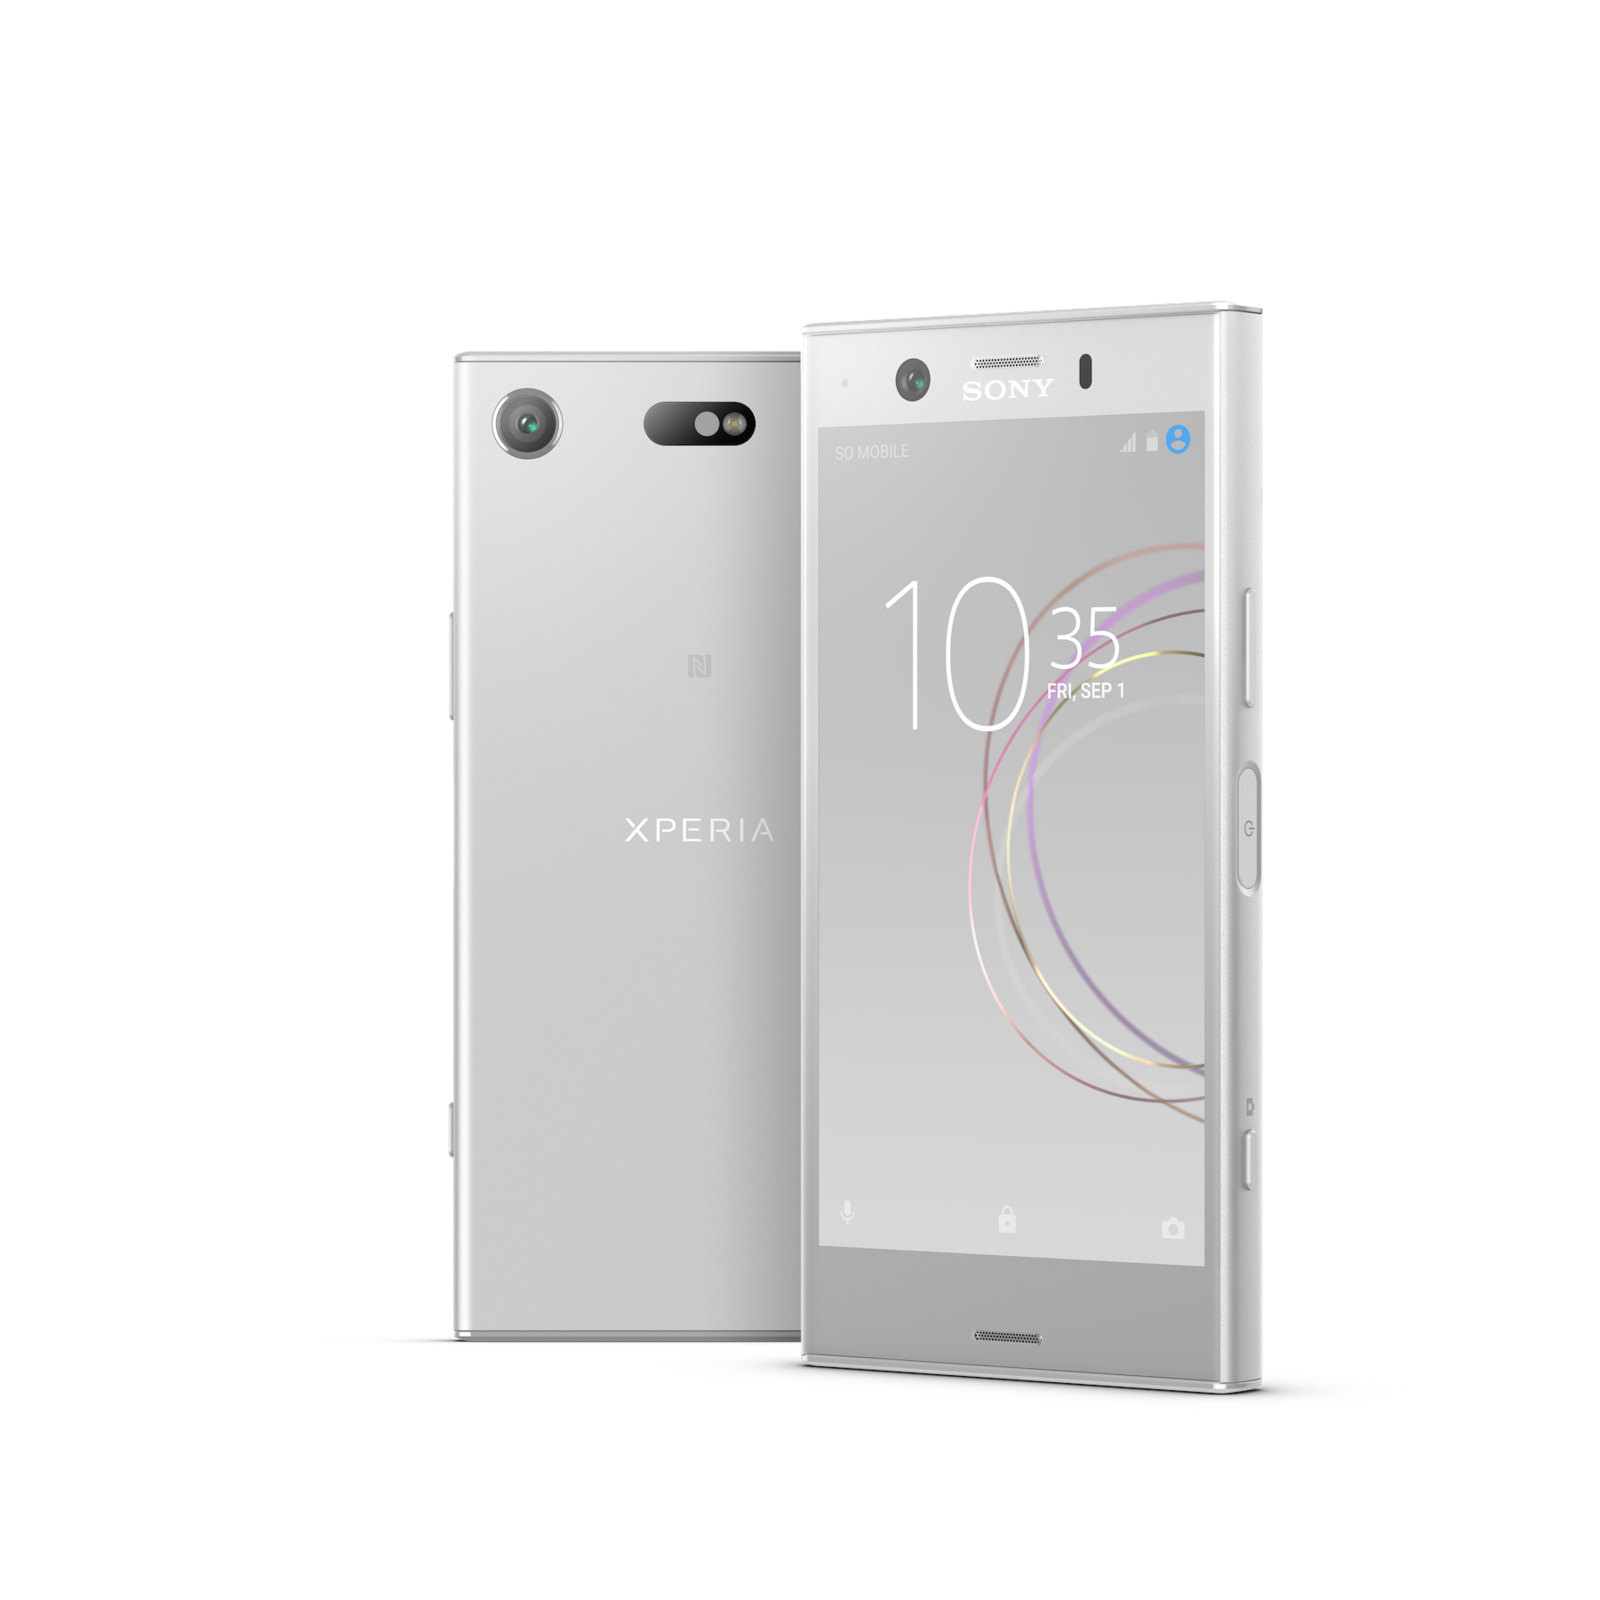 Android Oreo update finally ready for the Sony Xperia XZ Premium